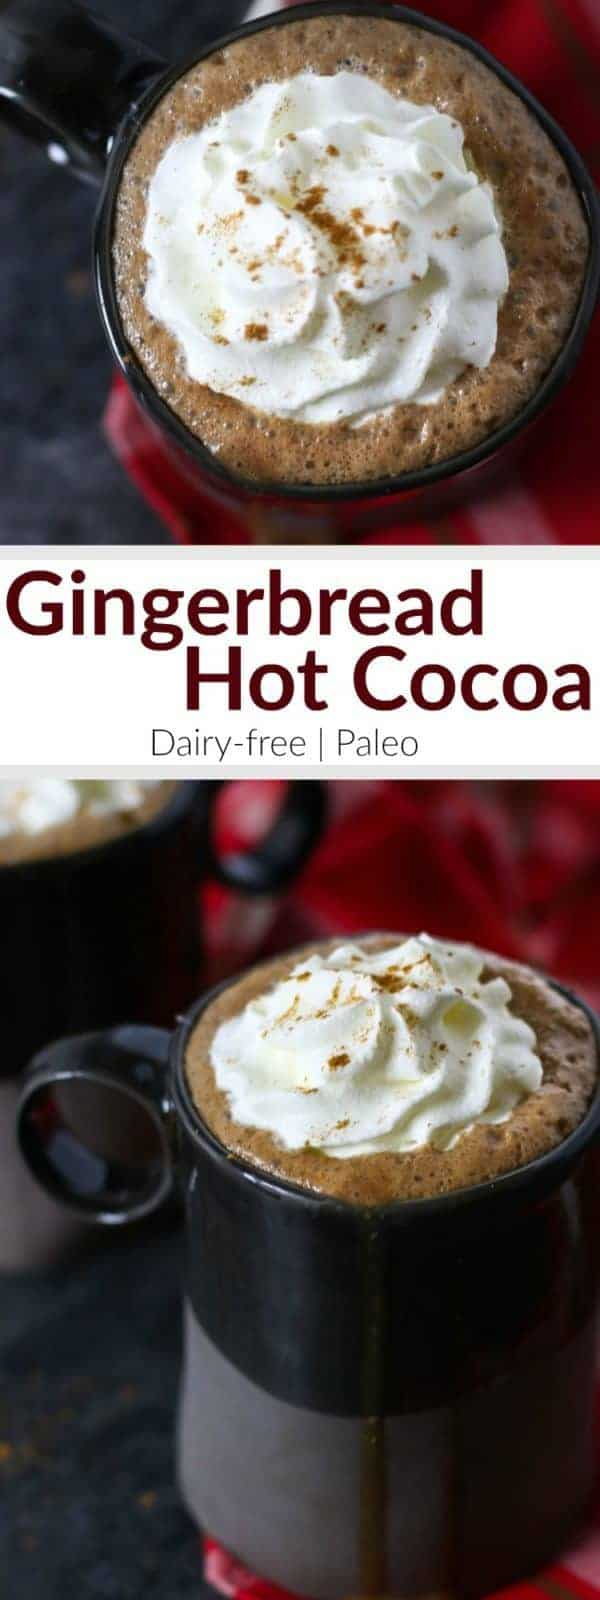 Dairy-free Gingerbread Hot Cocoa | In this Dairy-free Gingerbread Hot Cocoa that's sweetened with honey and molasses and spiced just right you get it all - cookies and cocoa - in one soul-warming mug topped with whipped coconut cream, if you please | Paleo | therealfoodrds.com